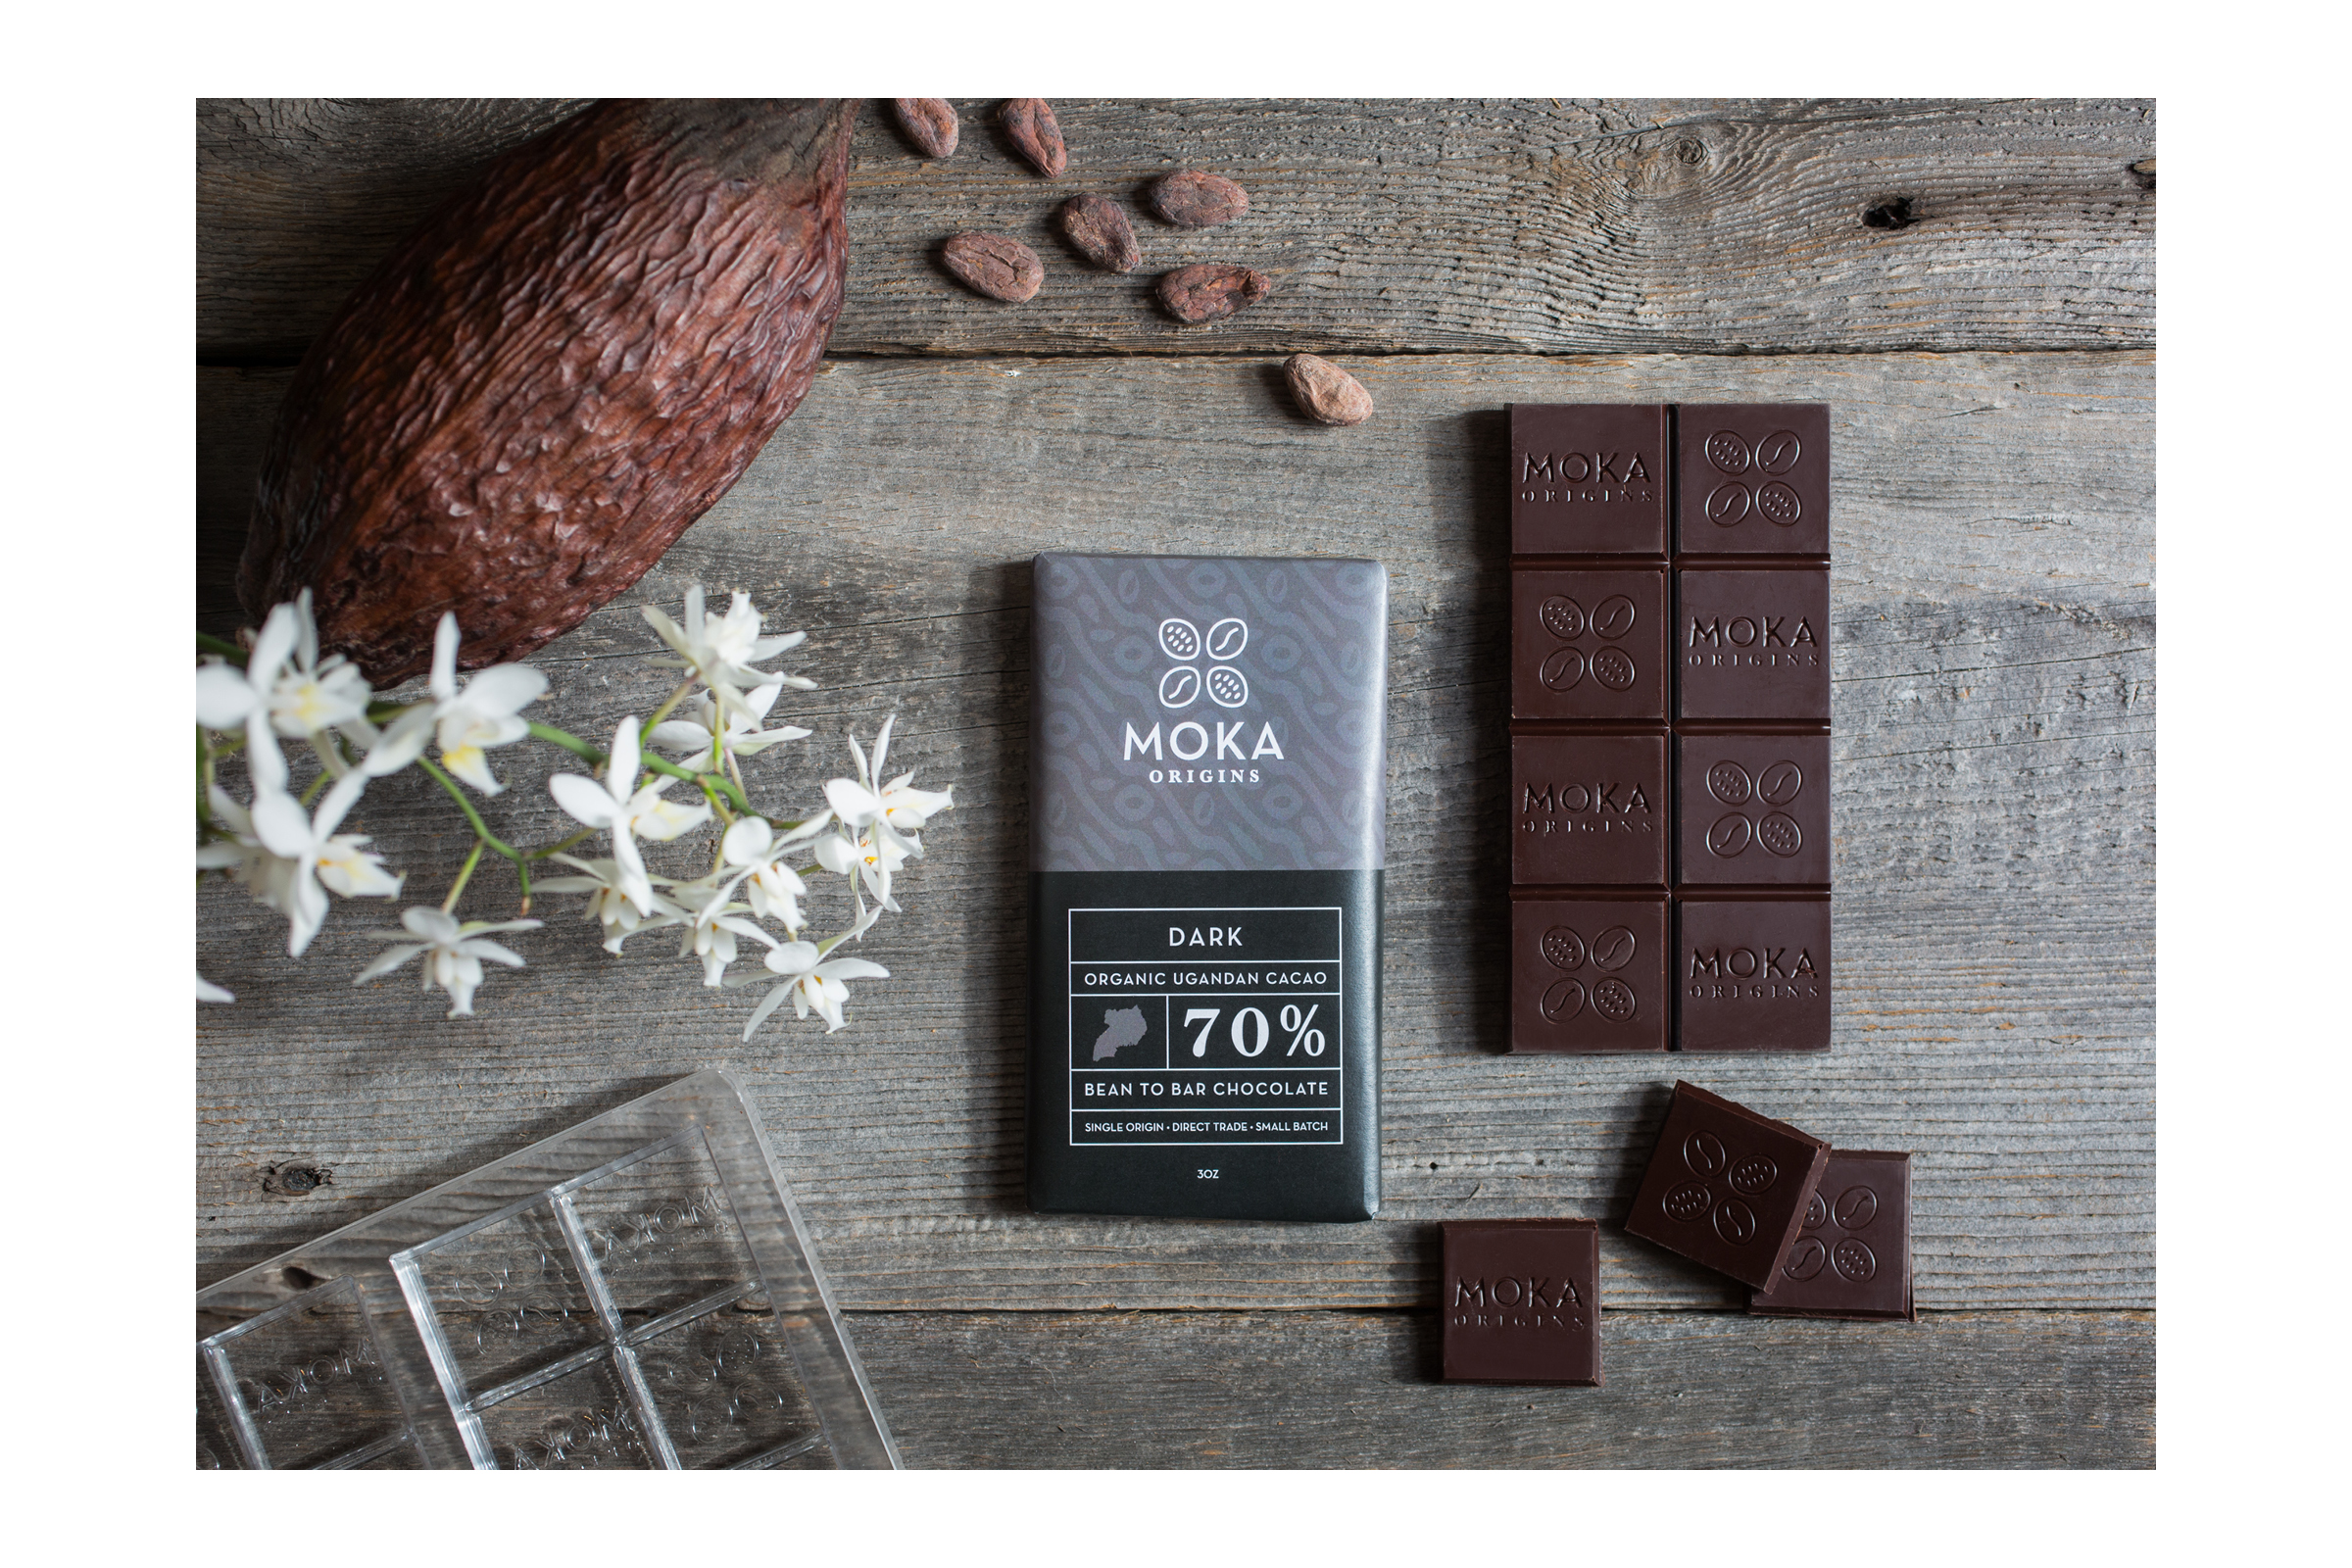 Moka Dark Chocolate Packaging